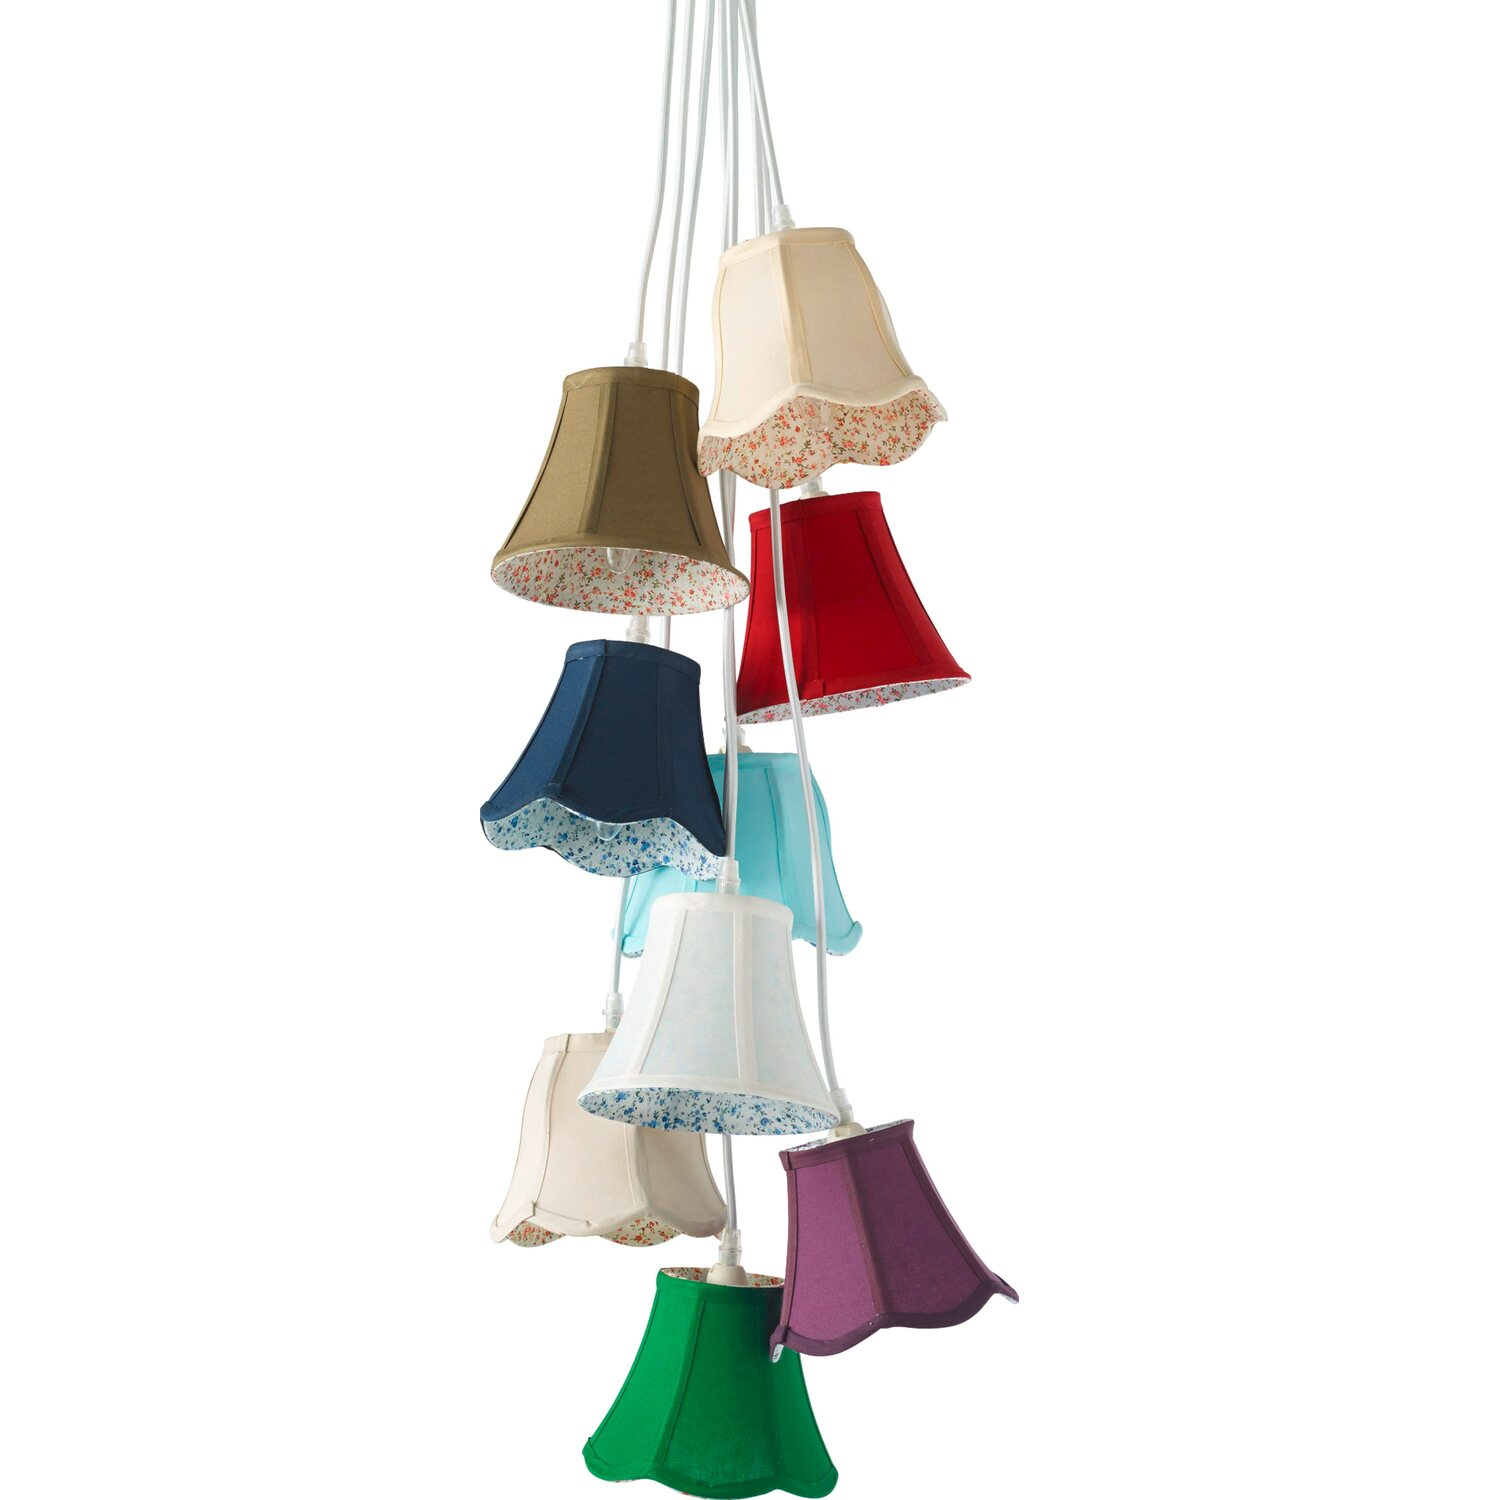 best of home Best of home Pendelleuchte EEK: E-A++ Bunte Lampenschirme